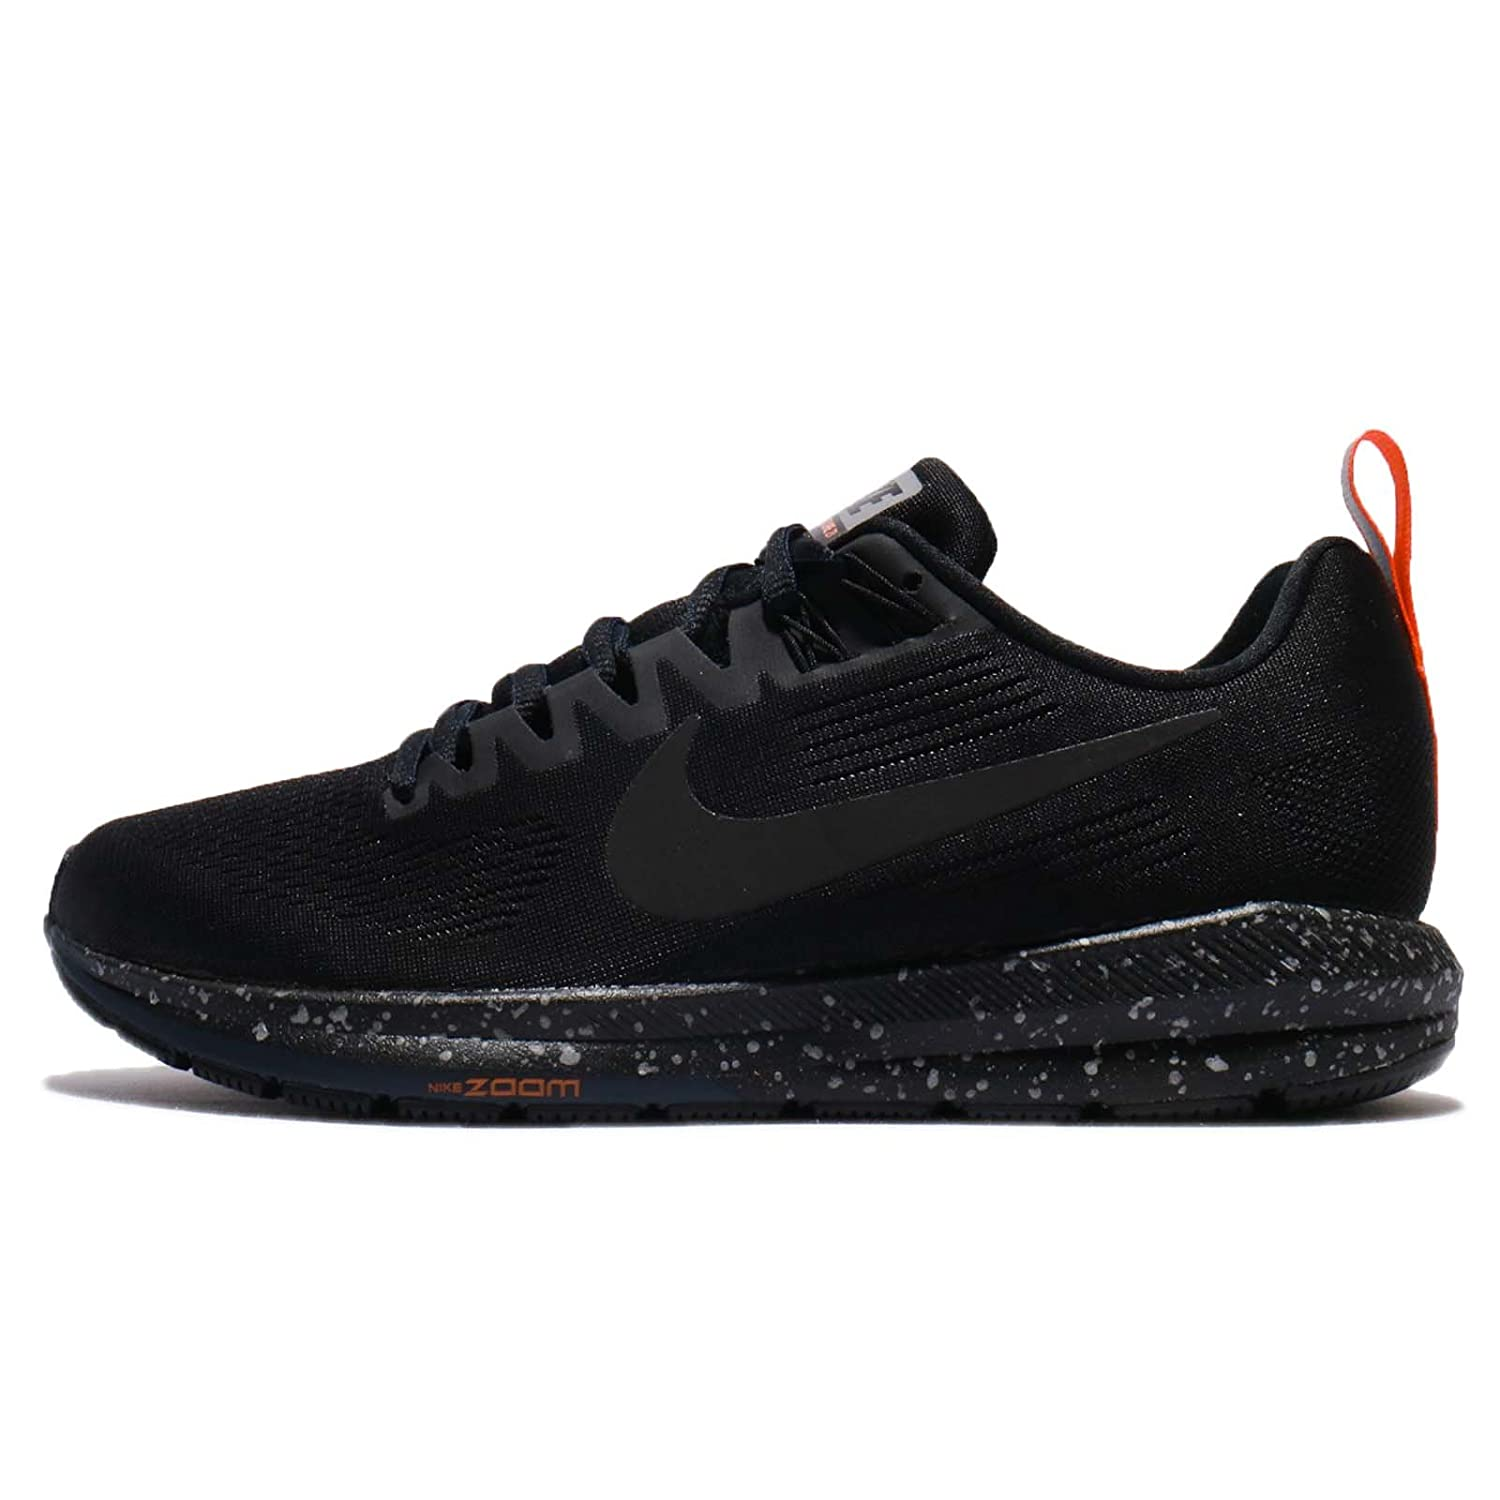 Zapatillas Nike s Women s Air Zoom Structure s Nike 21 Shield B018BKP3V6 b00c23